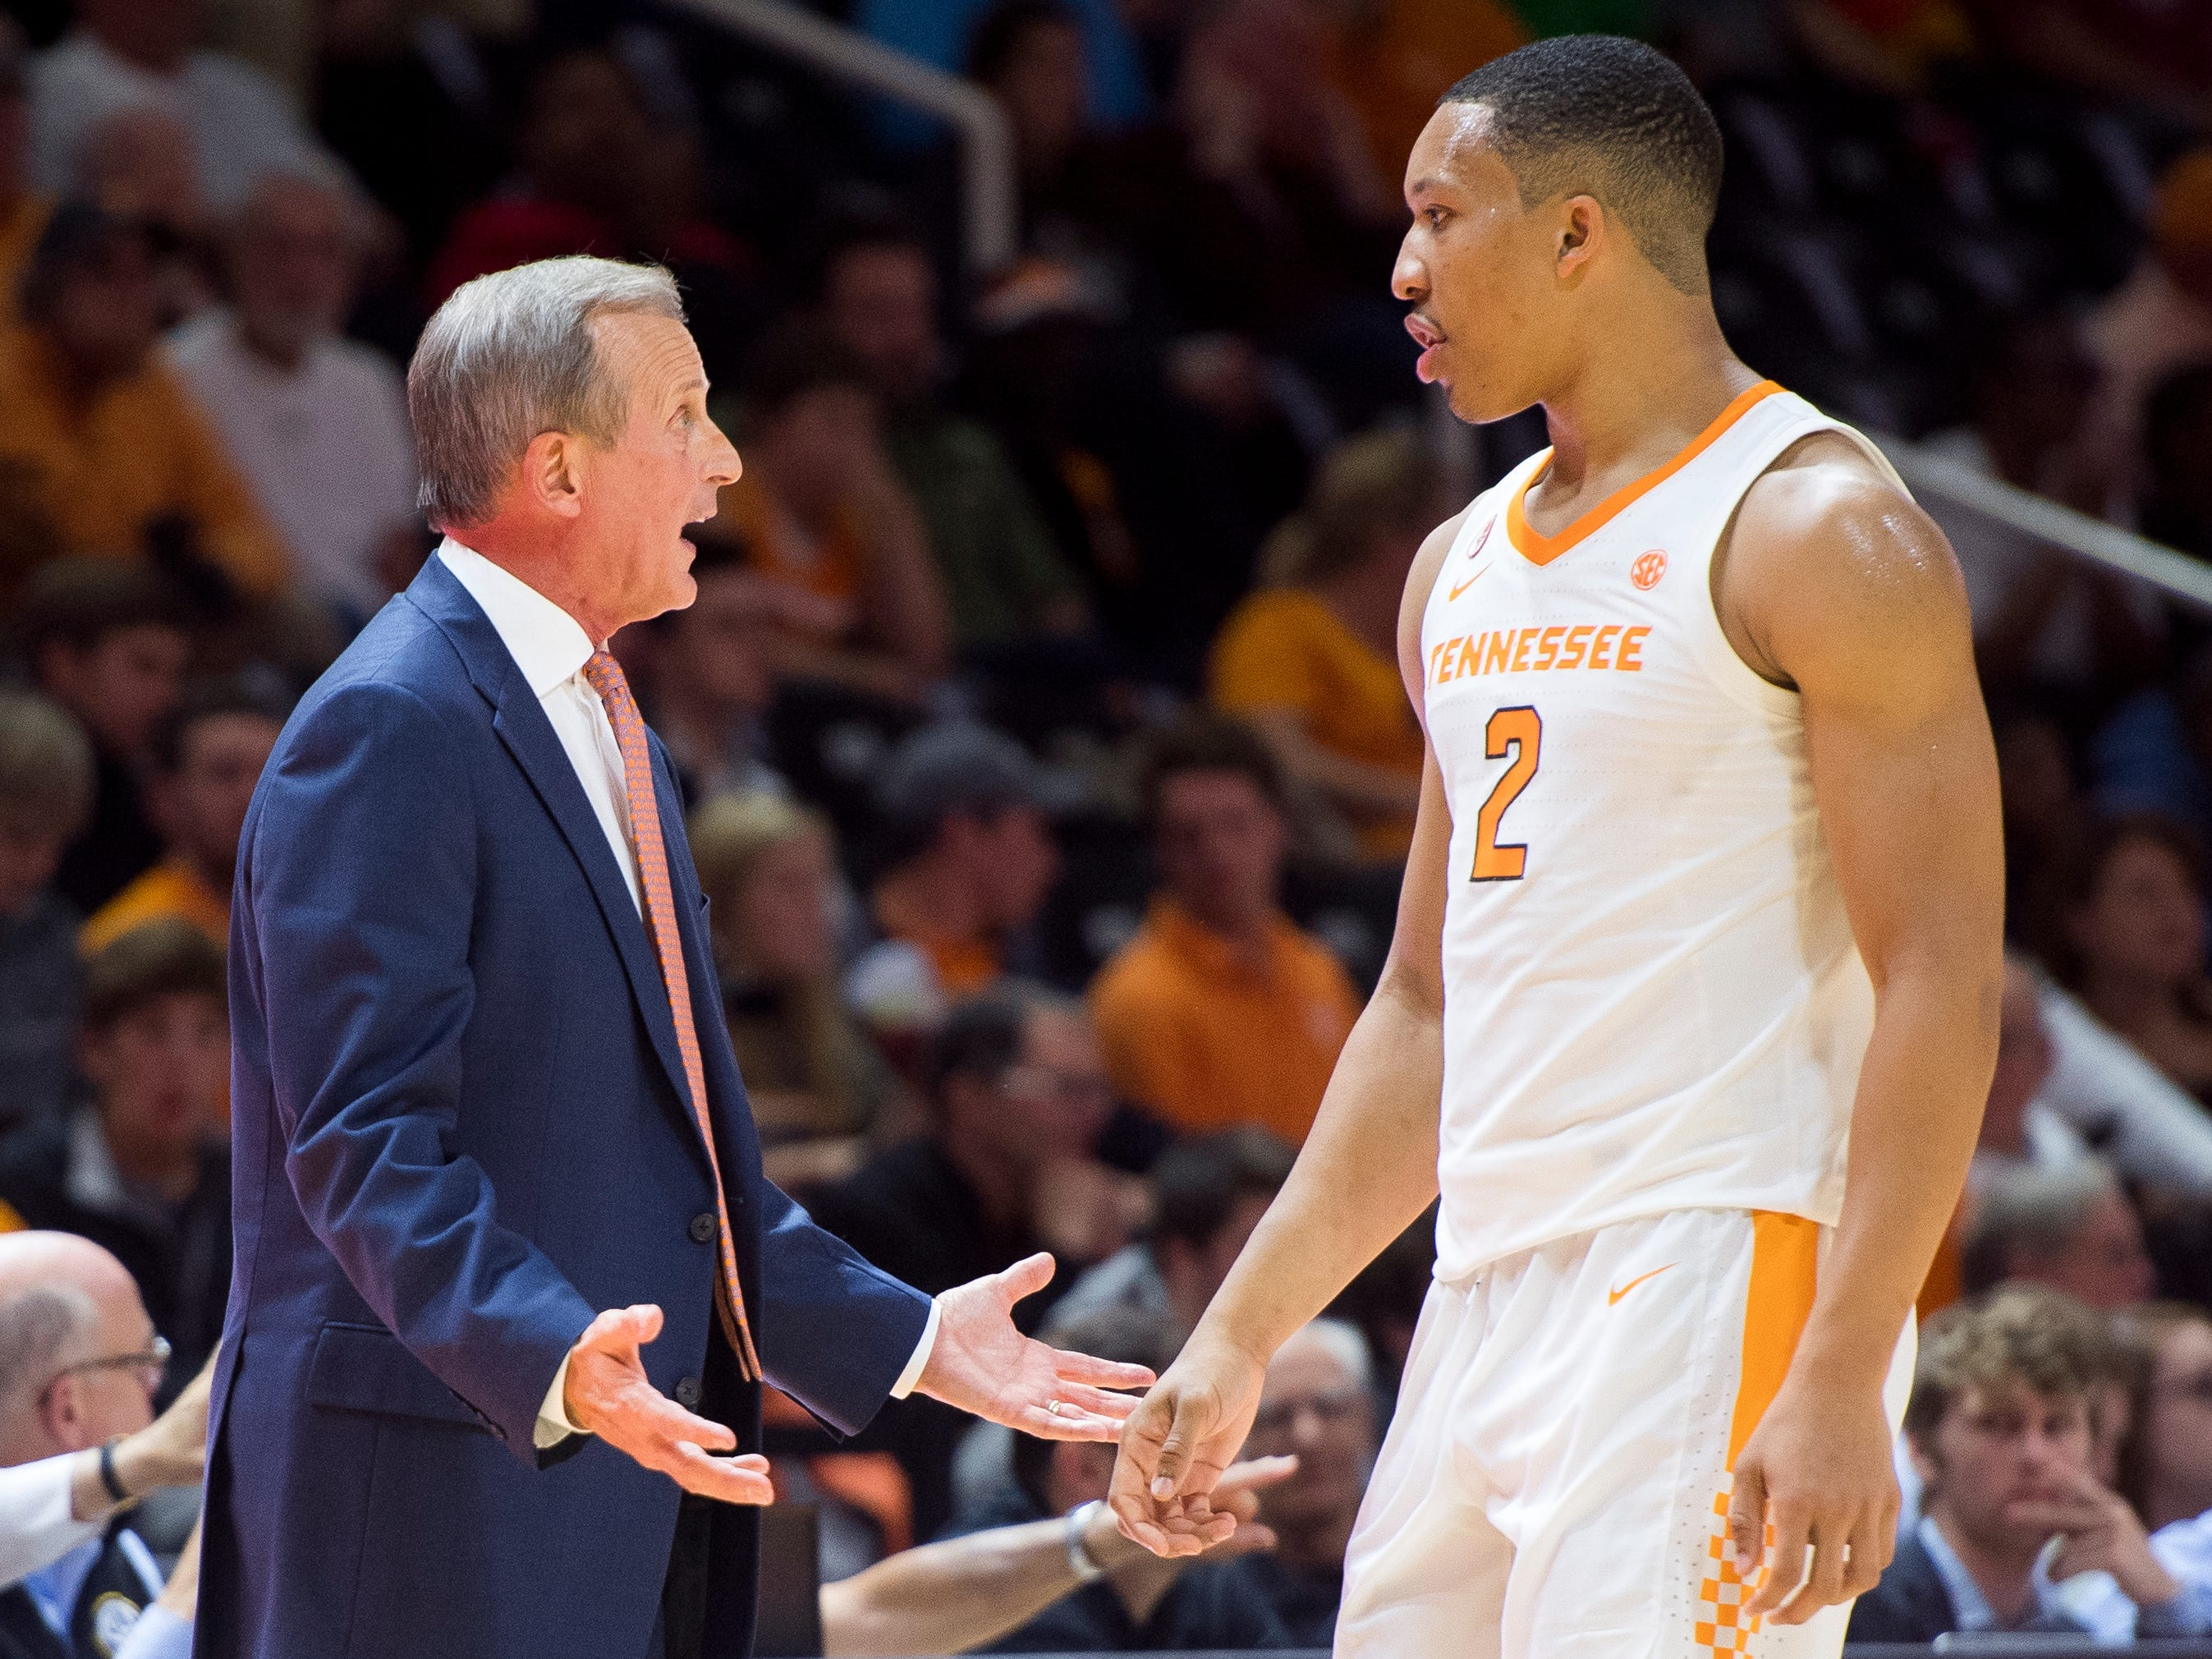 Tennessee Head Coach Rick Barnes talks to Tennessee forward Grant Williams (2) during Tennessee's basketball game against Lenoir-Rhyne at Thompson-Boling Arena in Knoxville on Tuesday, November 6, 2018.